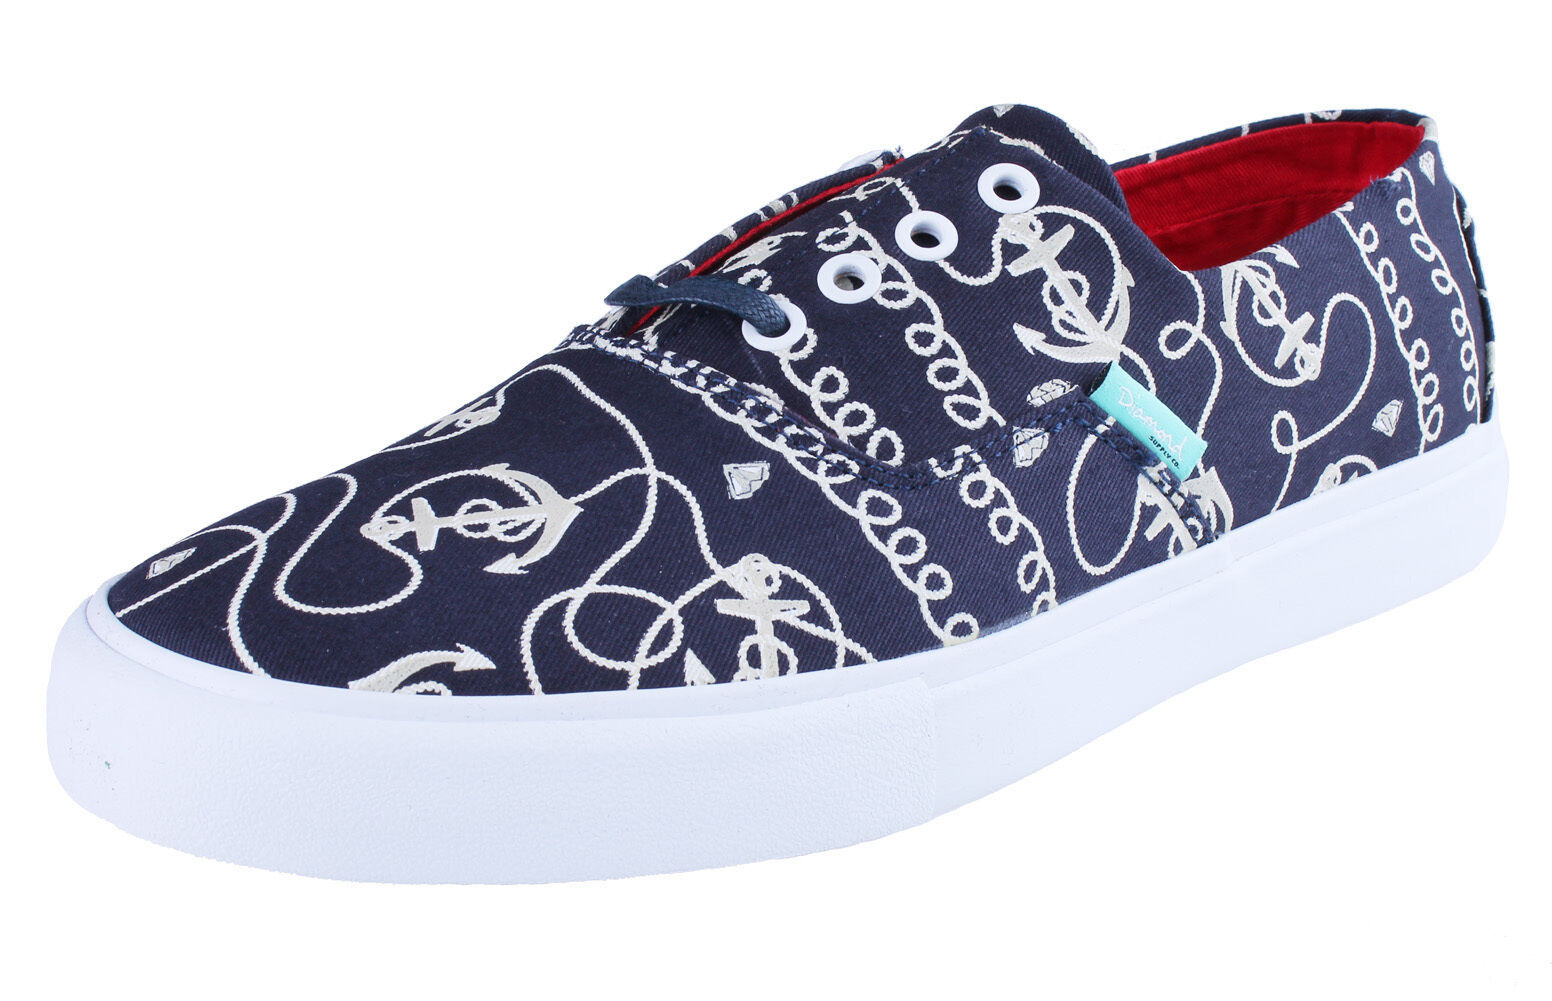 Diamond Supply Co Diamond Cuts Navy Anchors Canvas Sneakers Boat Shoes B14-F103